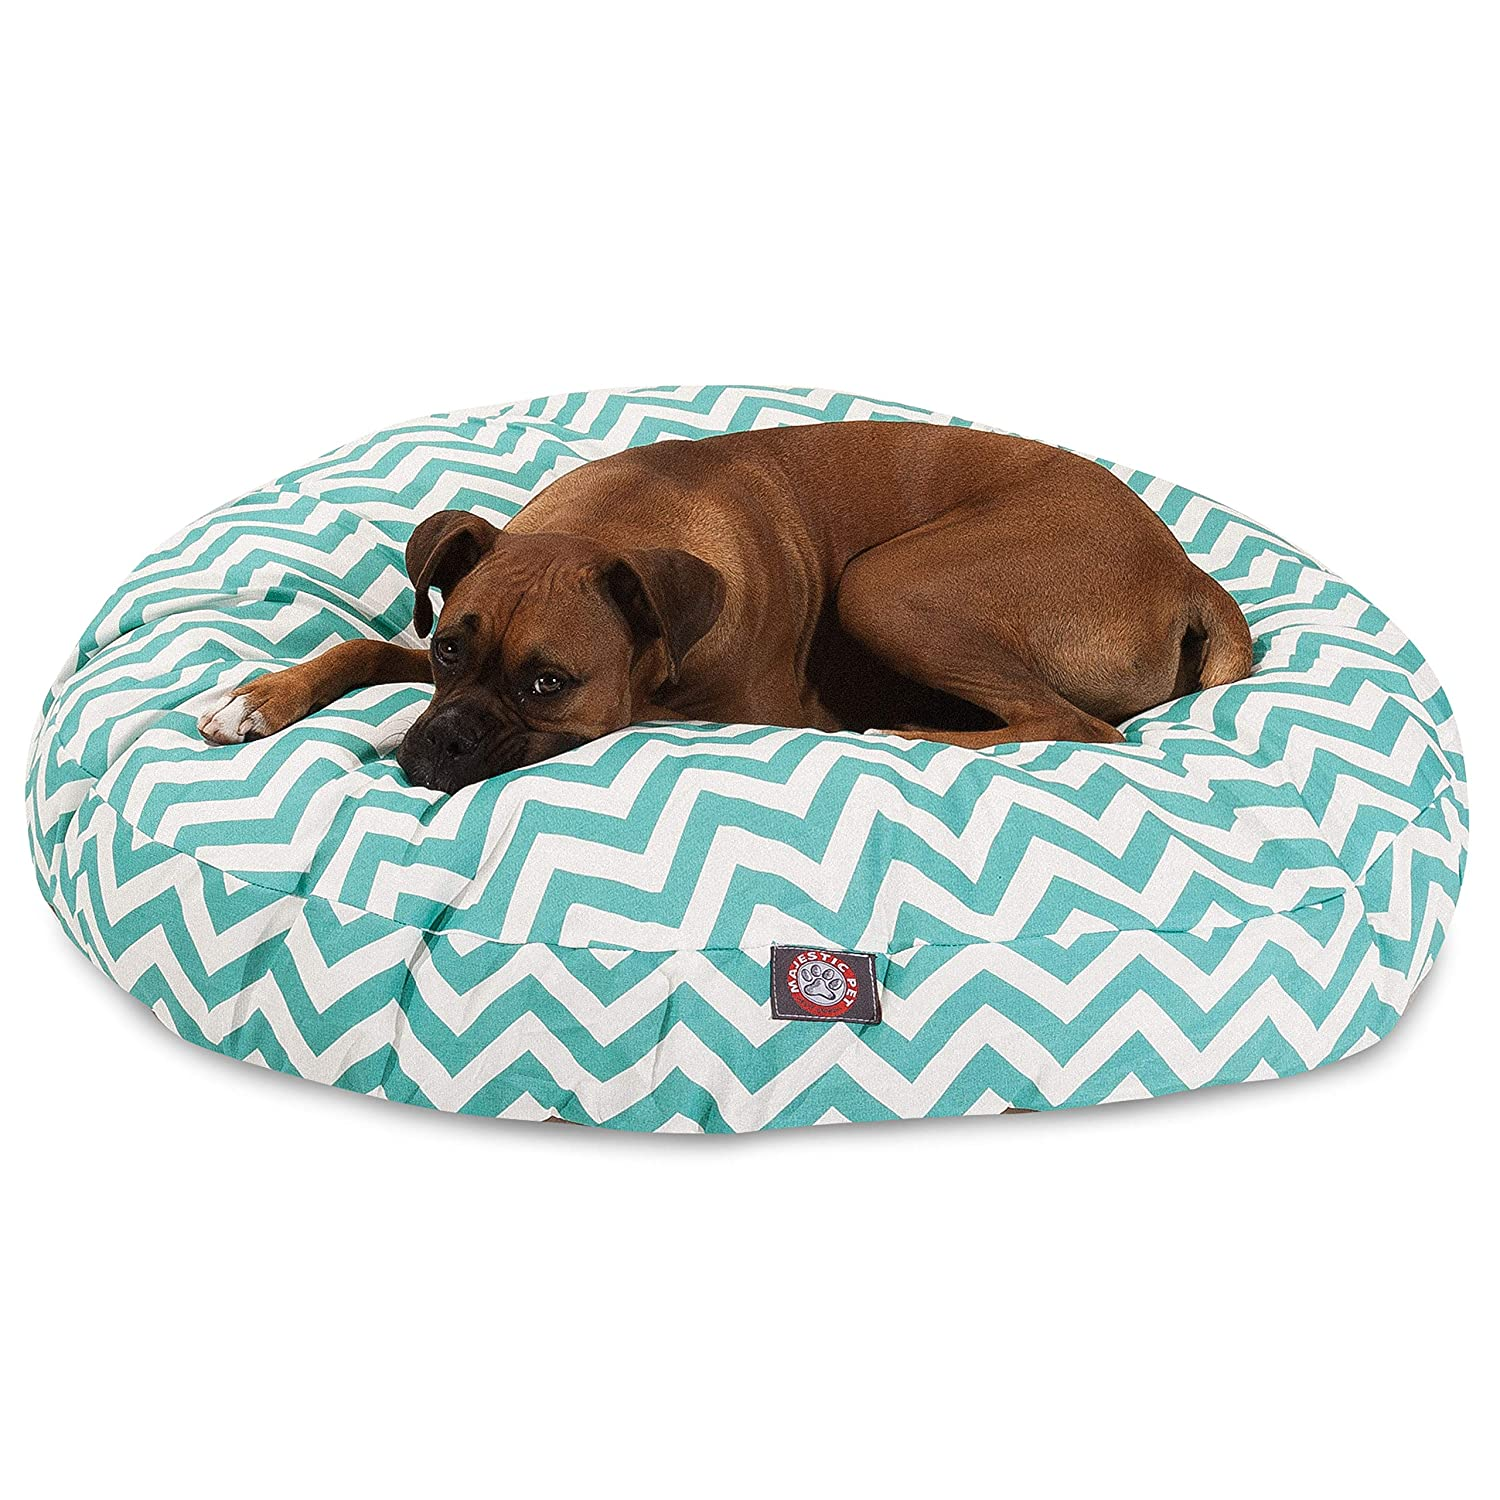 Teal Chevron Large Round Indoor Outdoor Pet Dog Bed with Removable Washable Cover by Majestic Pet Products